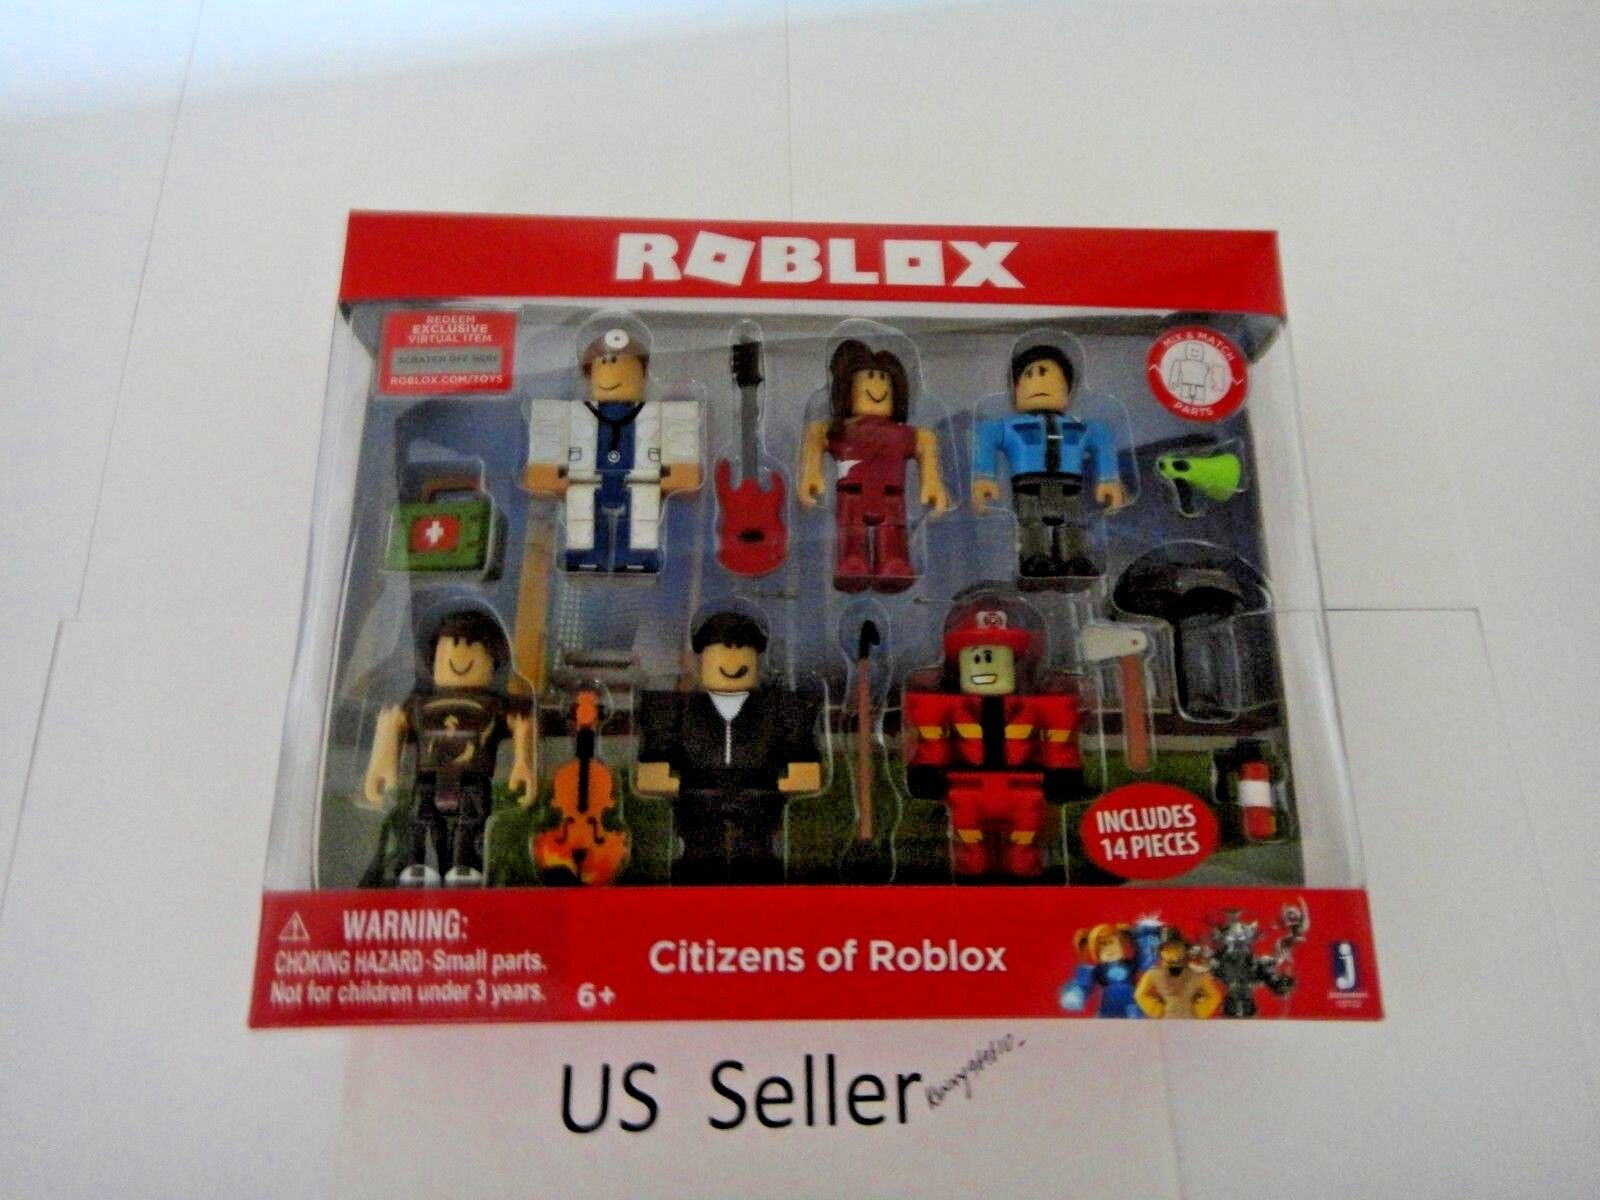 Roblox 10732 Citizens of 6 Figure Pack